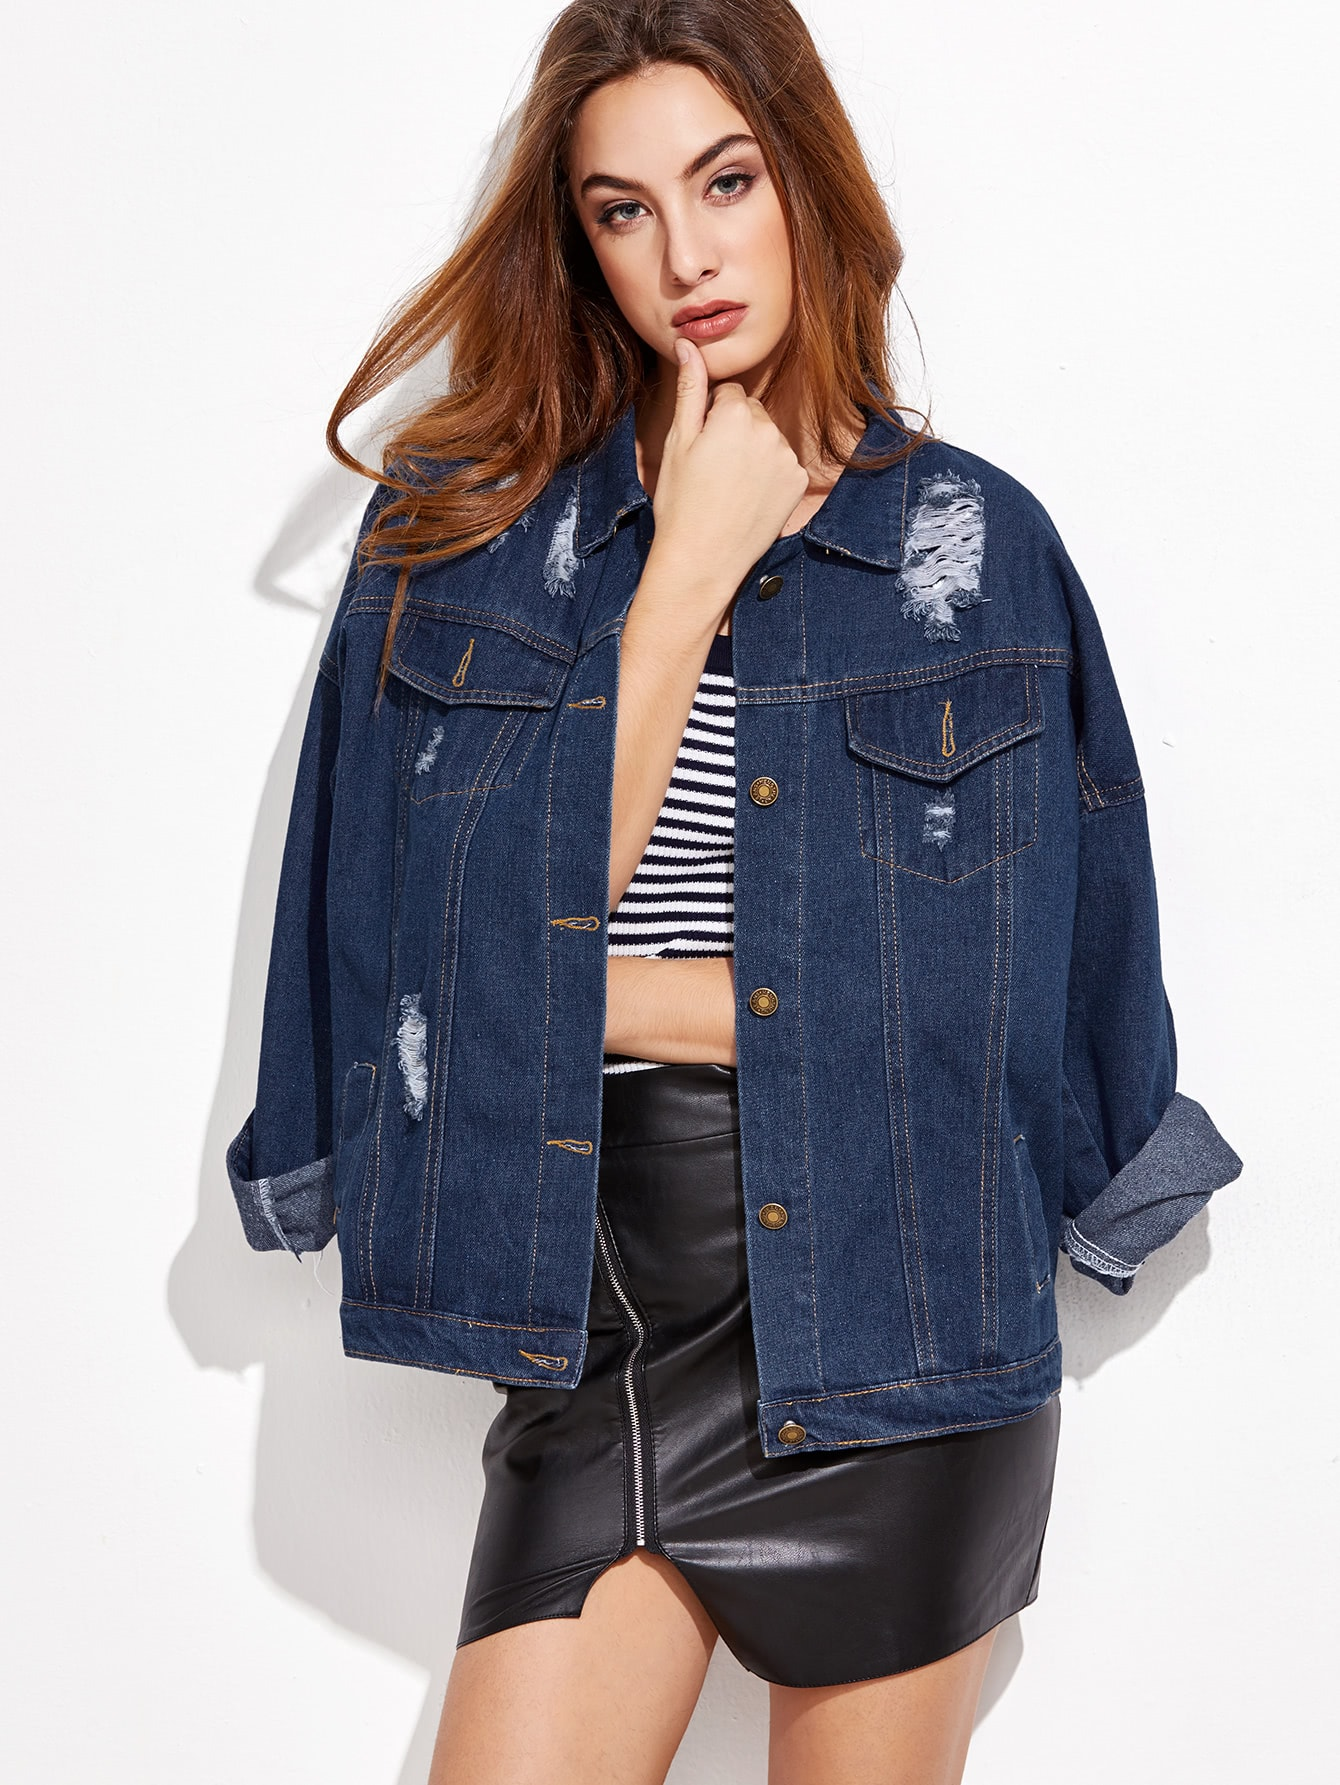 Women's Jackets - Leather, Winter, Denim & Bomber Jackets | Romwe.com